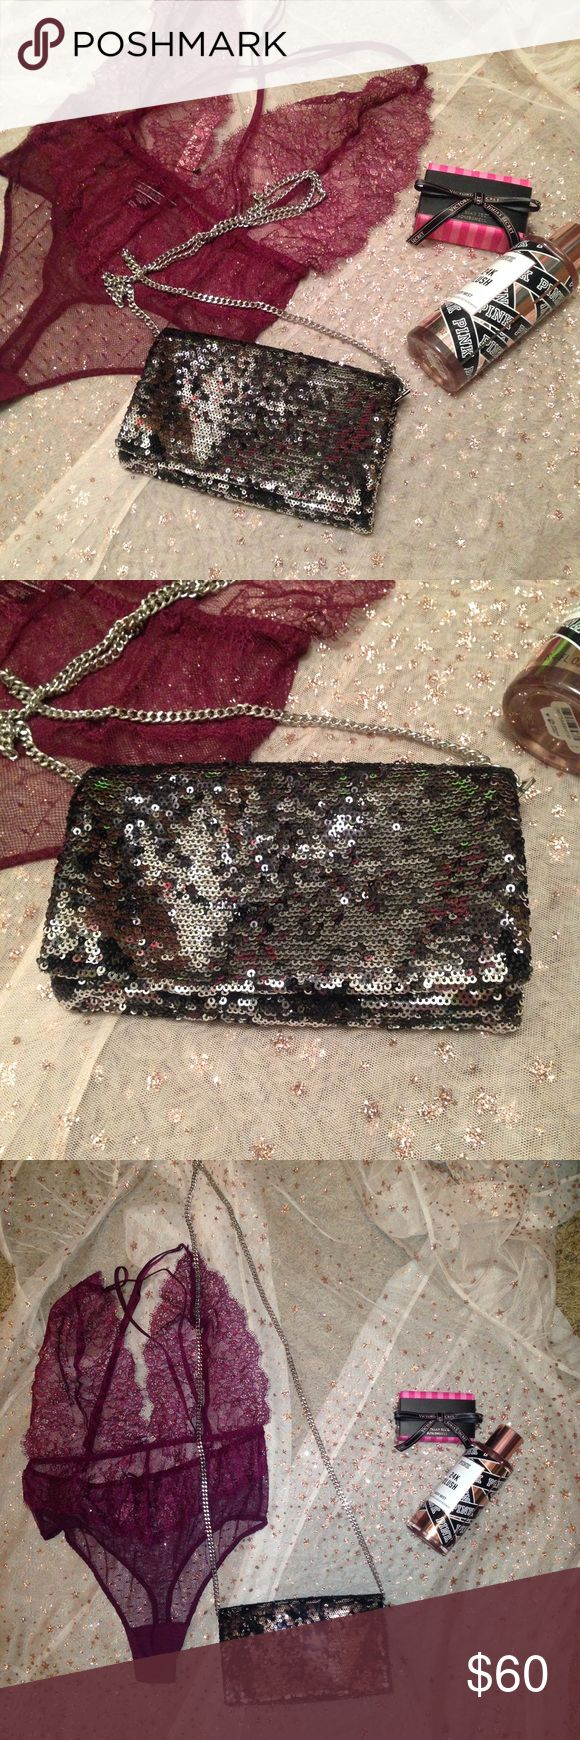 Sequin Clutch Gorgeous silver & gunmetal tone sequin clutch / wallet.   •detachable shoulder chain •two zipper pockets- one is 1/3 clutch, other is 2/3 clutch (goes under middle section) •can be used as a clutch or a shoulder bag  Brand new from my boutique! Also available in gold / champagne.  all offers are welcome! Boutique Bags Clutches & Wristlets